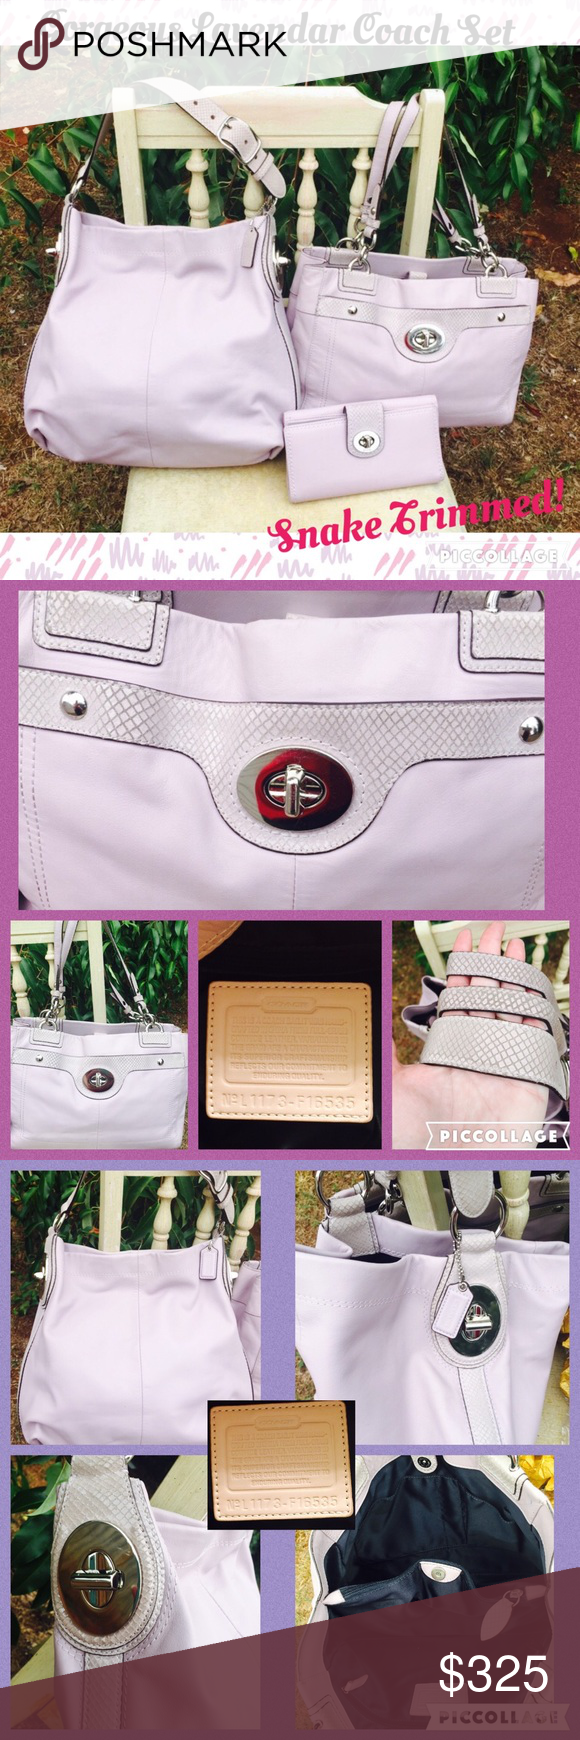 Coach Lavender Purple Purse Wallet  Snakeskin Set The largest purse is in excellent condition.  I do not see anything jumping out upon inspection, super clean insides.  The other bag is in good condition.  The outside has some very minimal wear on the bottom, super clean insides.  The hang tag is missing on this one.  Both bags have good handles.  Light scratching on the turnlocks for both.  The wallet is in excellent condition.  It has a small pen mark underneath the flap.    Please also…